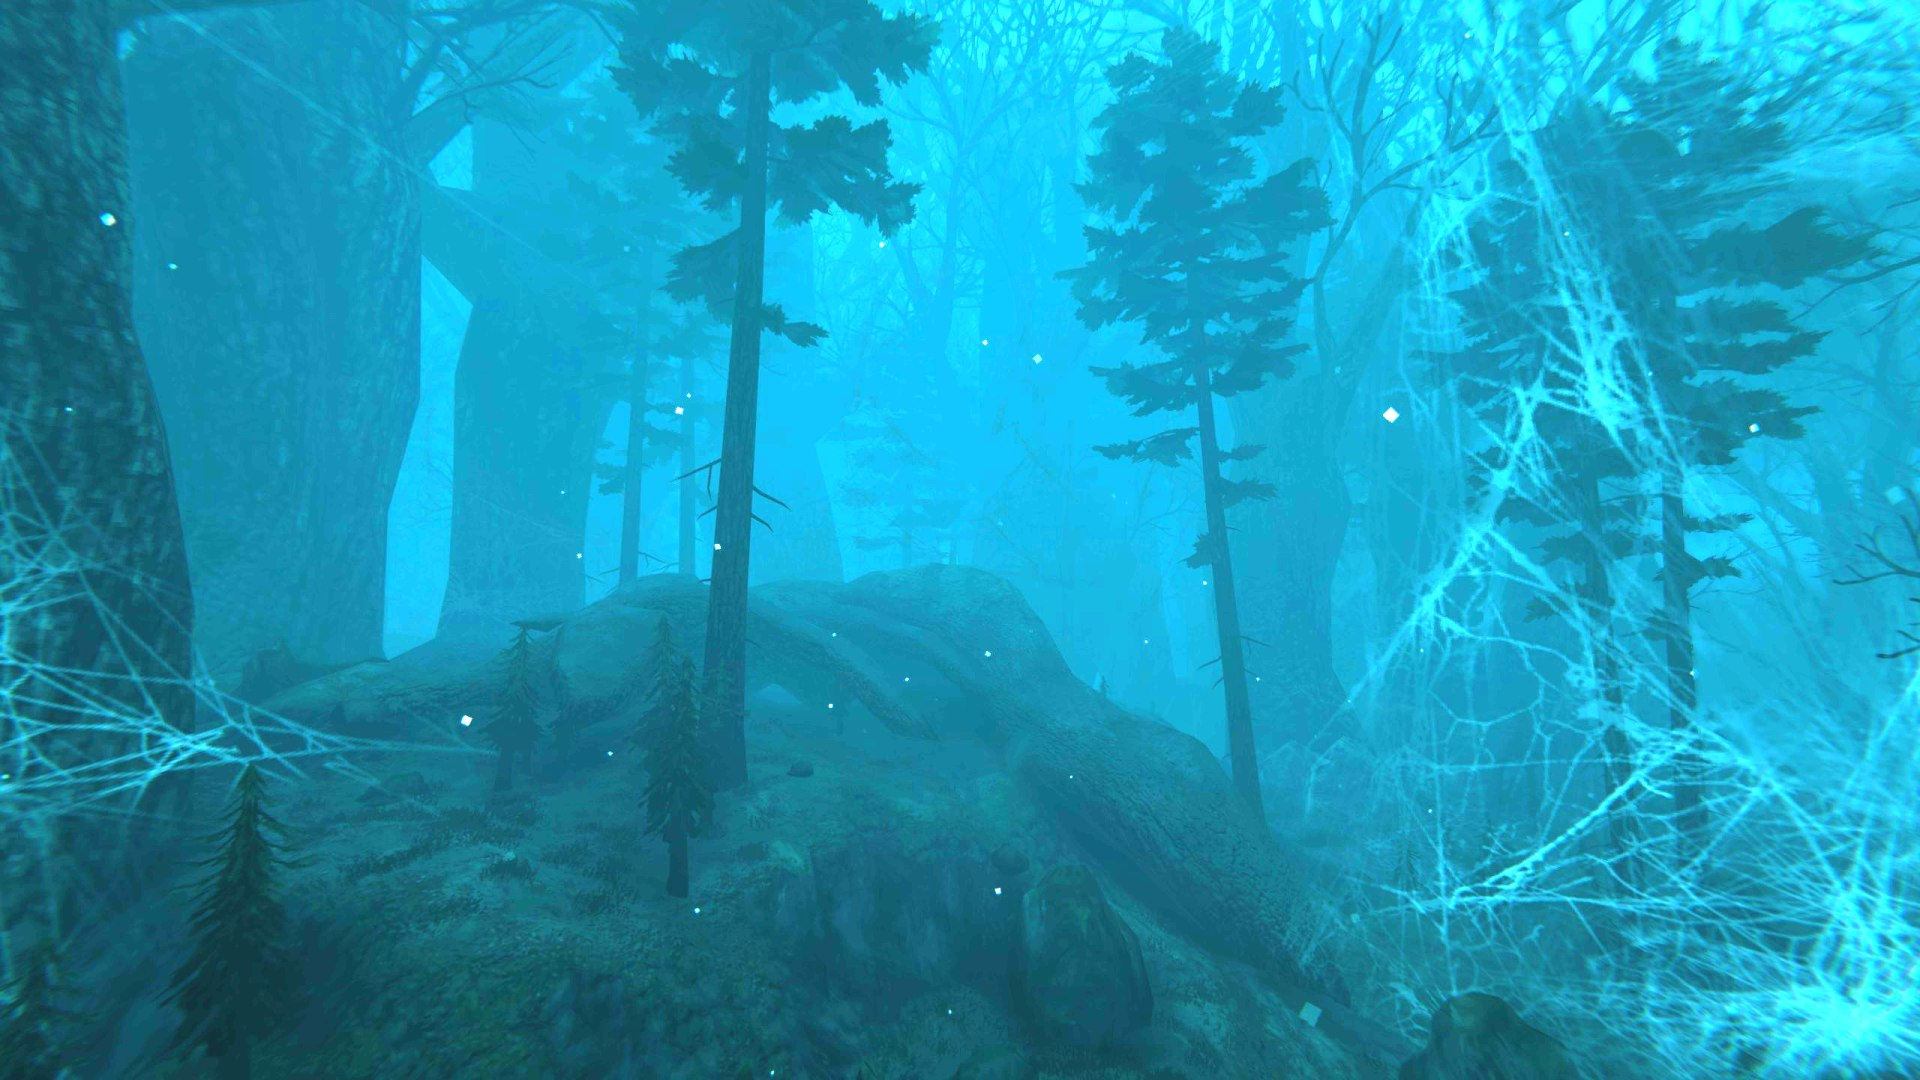 Valheim is getting a new area